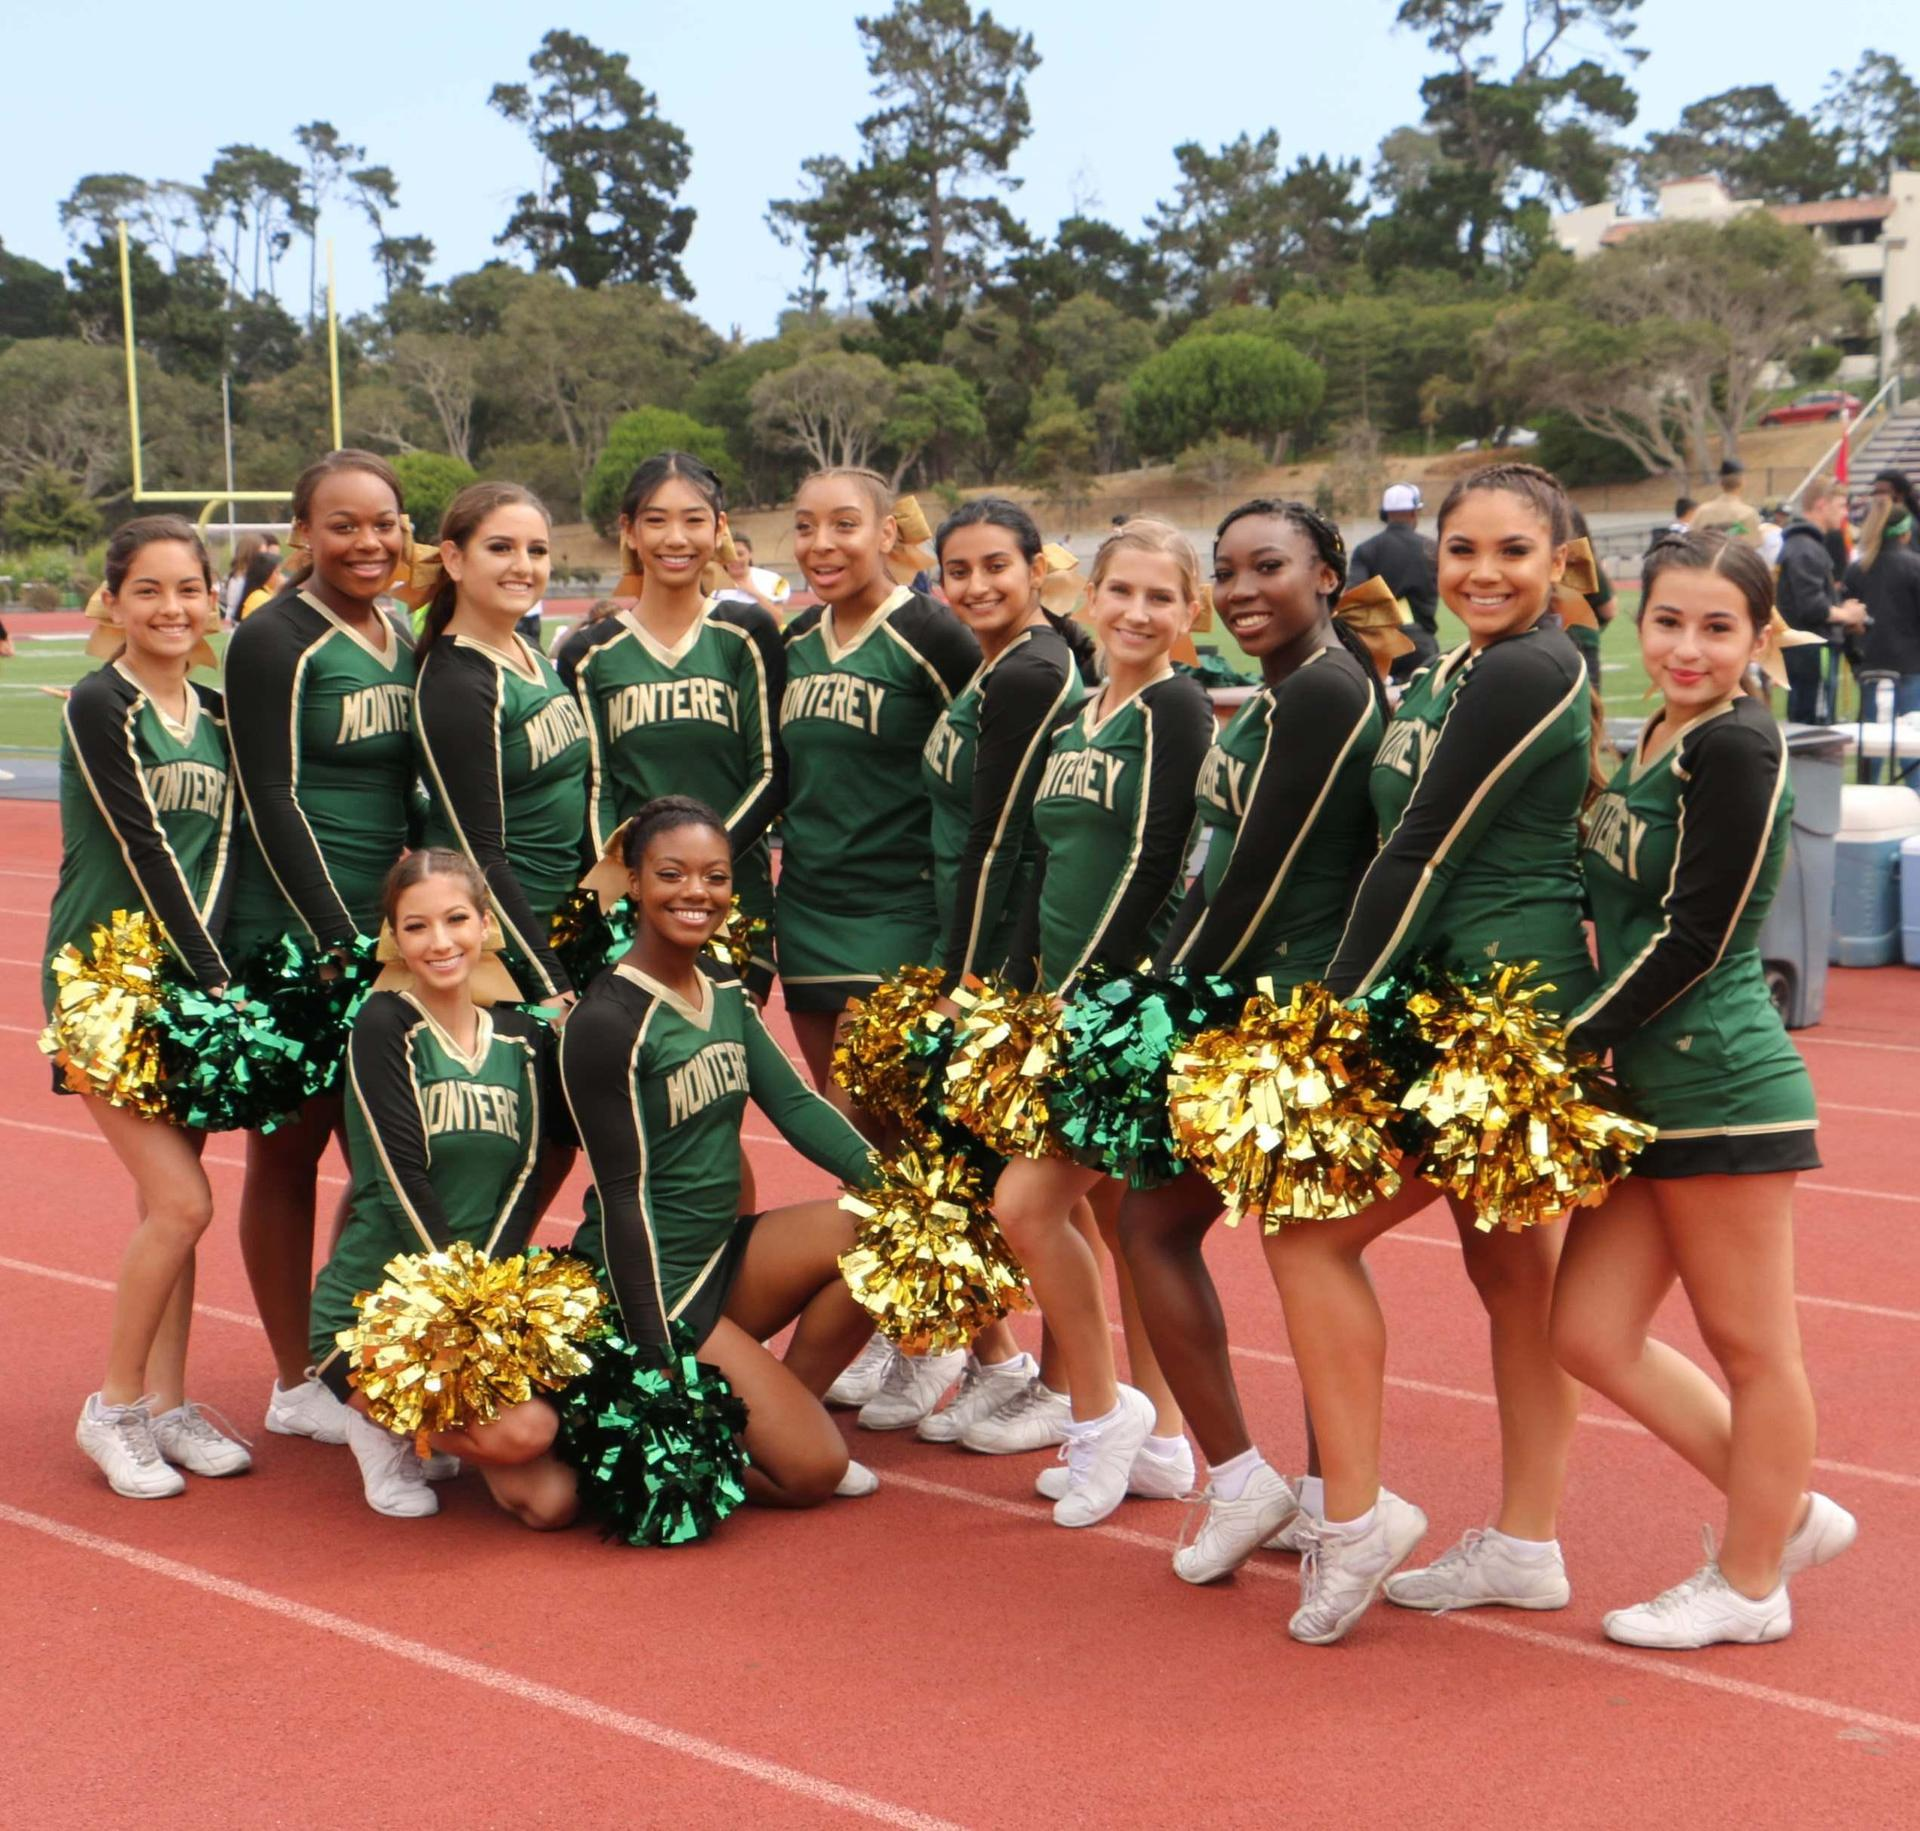 MHS Cheerleaders